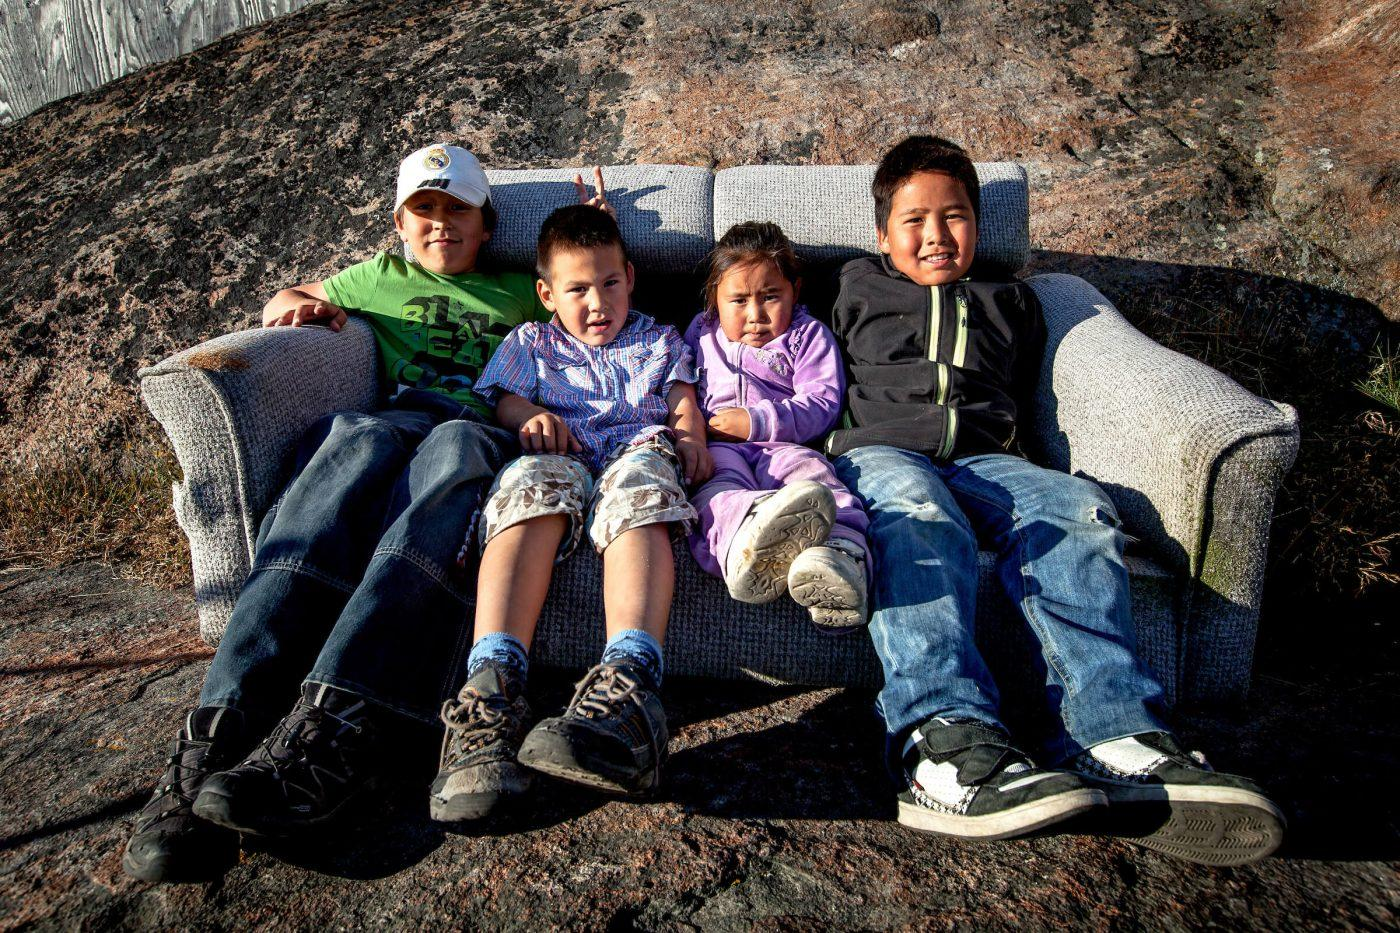 Four kids from Kangaamiut in Greenland hanging out in an outdoor sofa. Photo by Mads Pihl